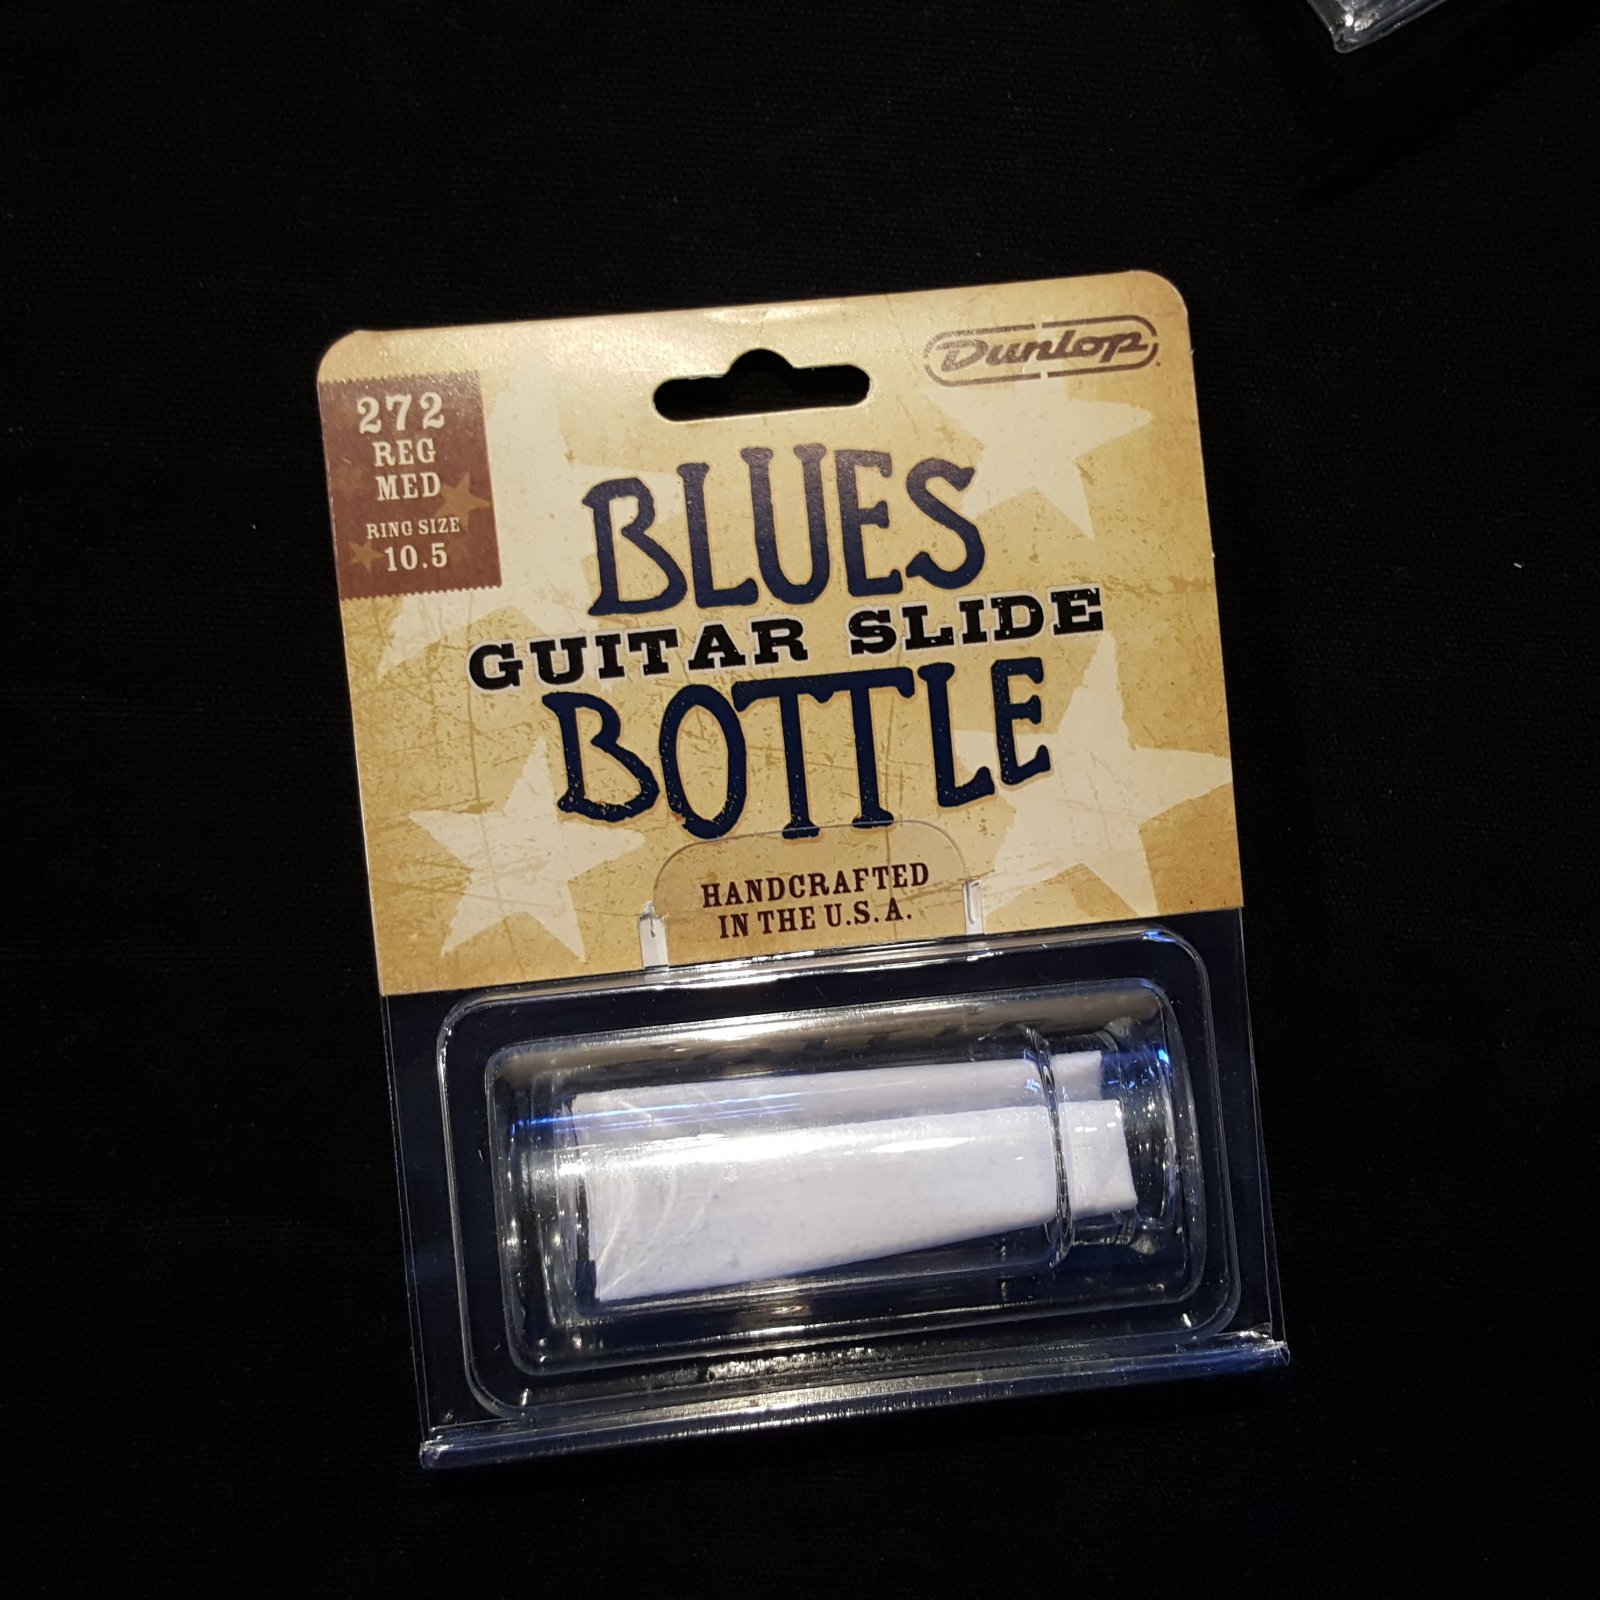 Dunlop 272 Blues Bottle Slide Size 10